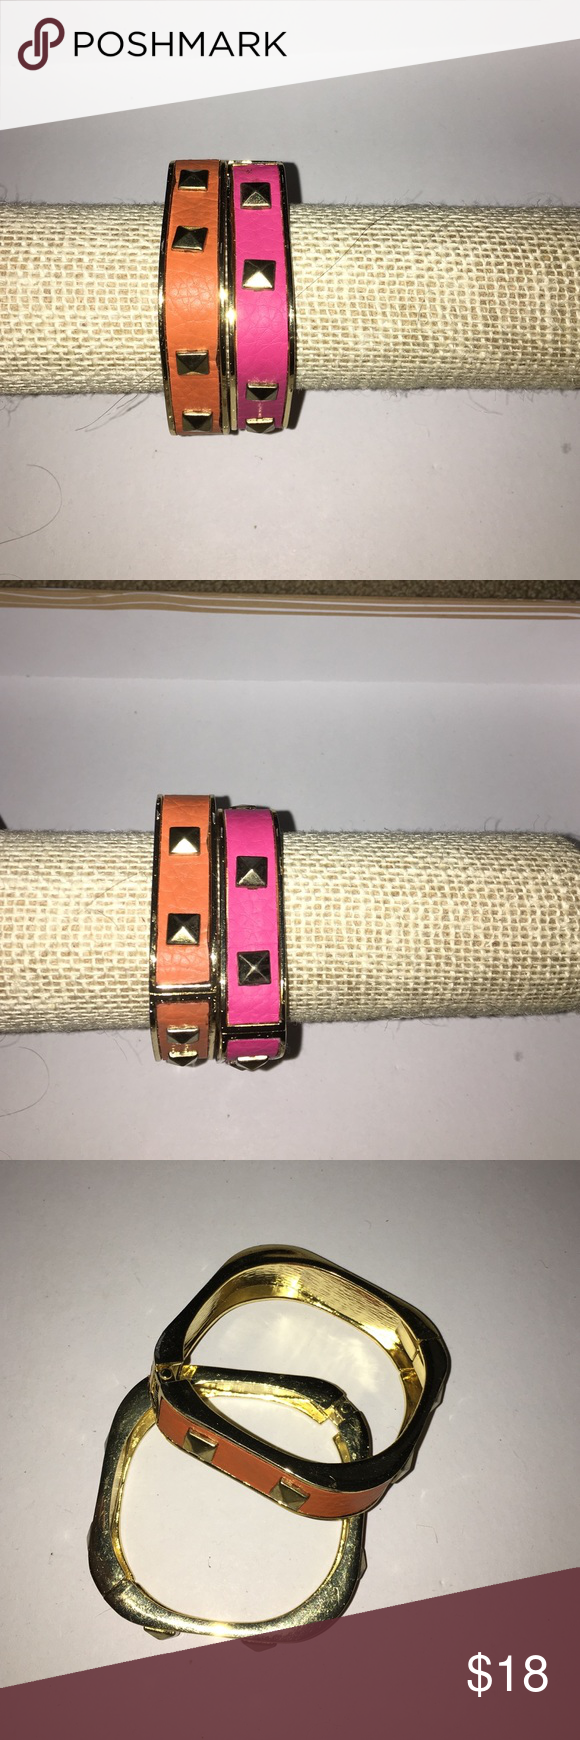 Set of Pink and Orange Bangles Set of Pink and Orange Bangles. Set of two bracelets. Hinge closure. Pink leather with gold stud details. Orange leather with gold stud details. NWOT. Jewelry Bracelets